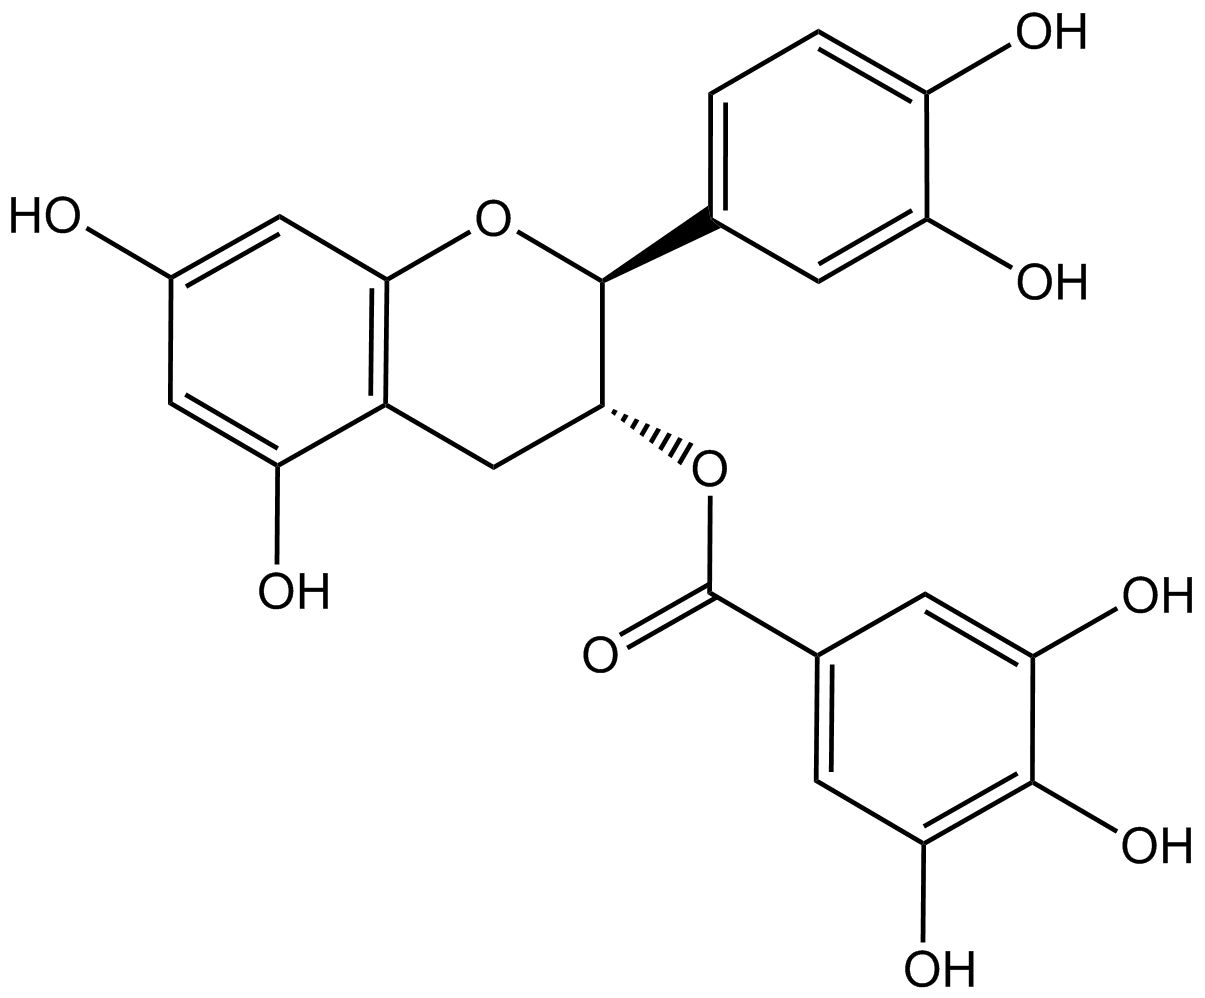 (-)-Catechin 3-gallate phyproof® Reference Substance | PhytoLab